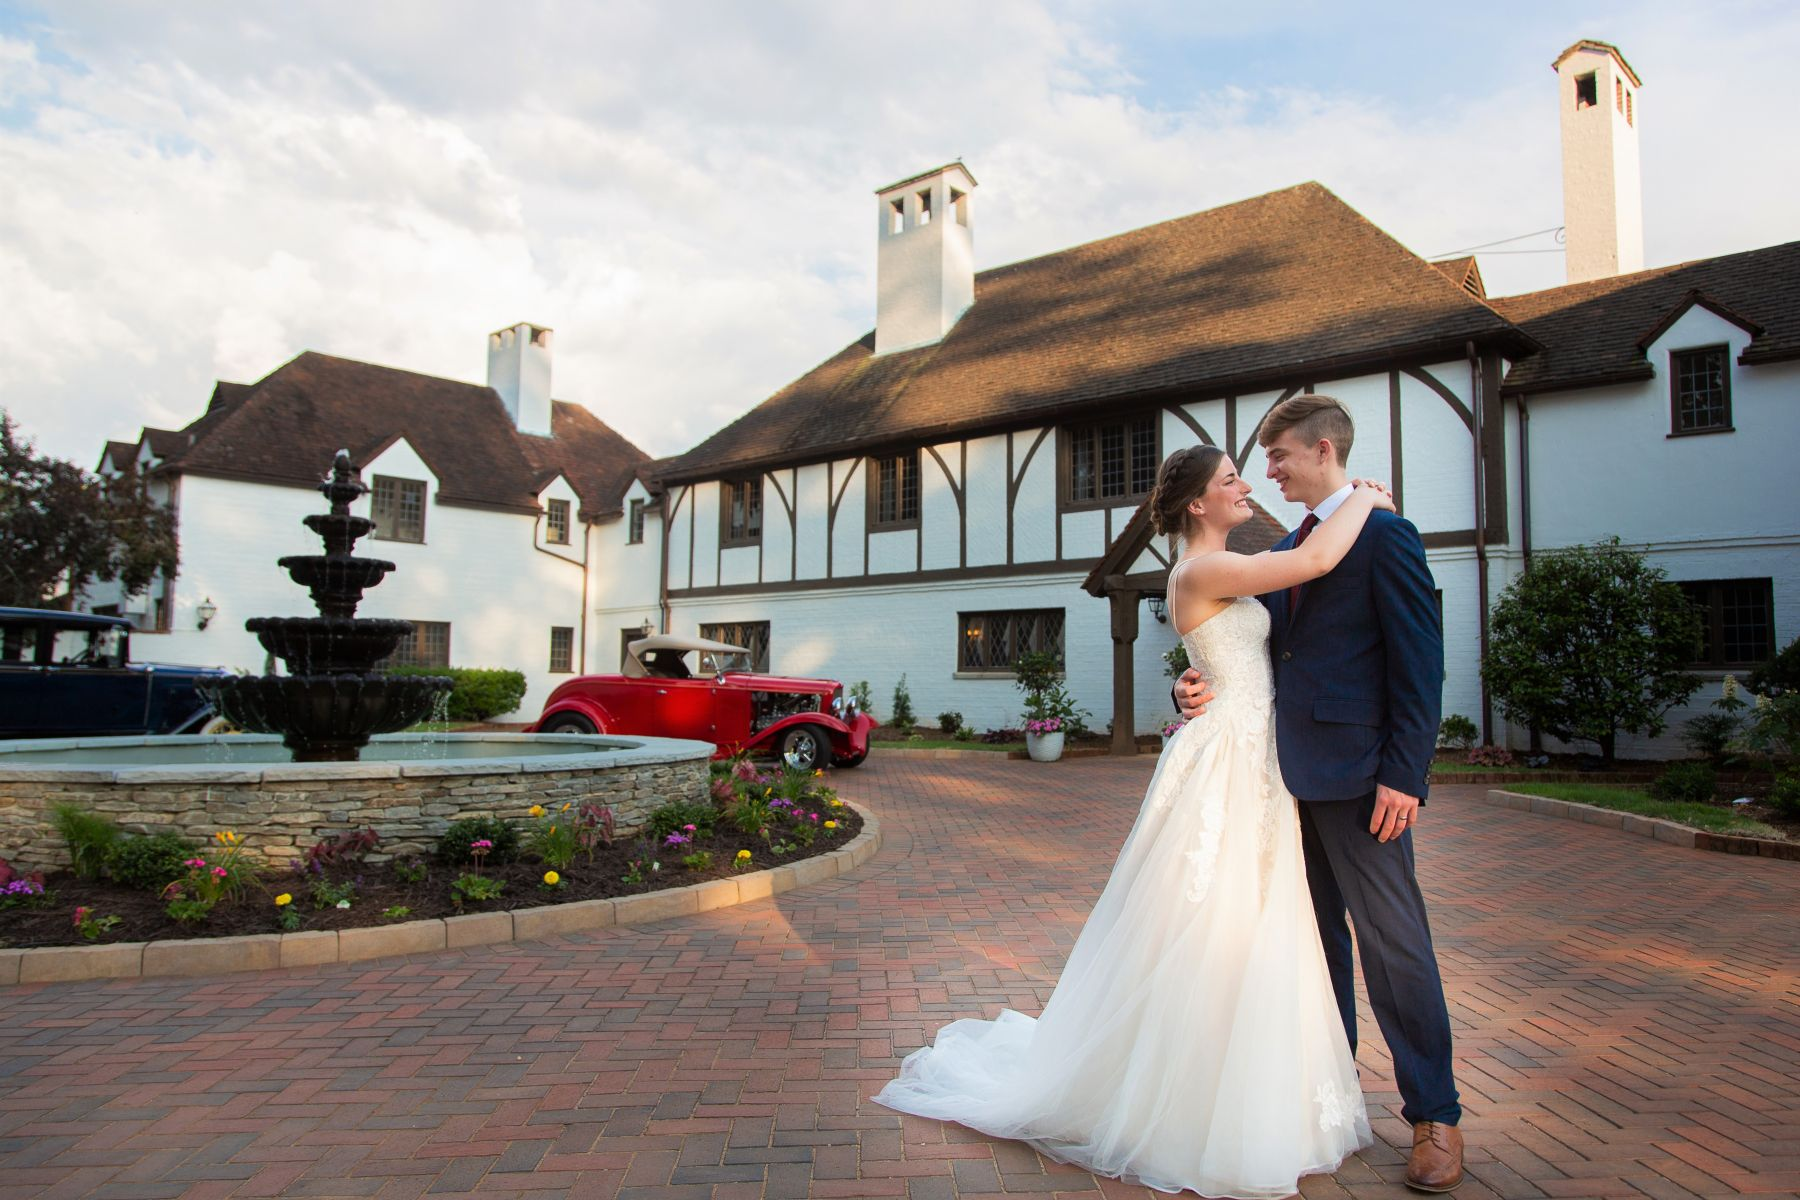 Bride-Groom-Courtyard-1-2